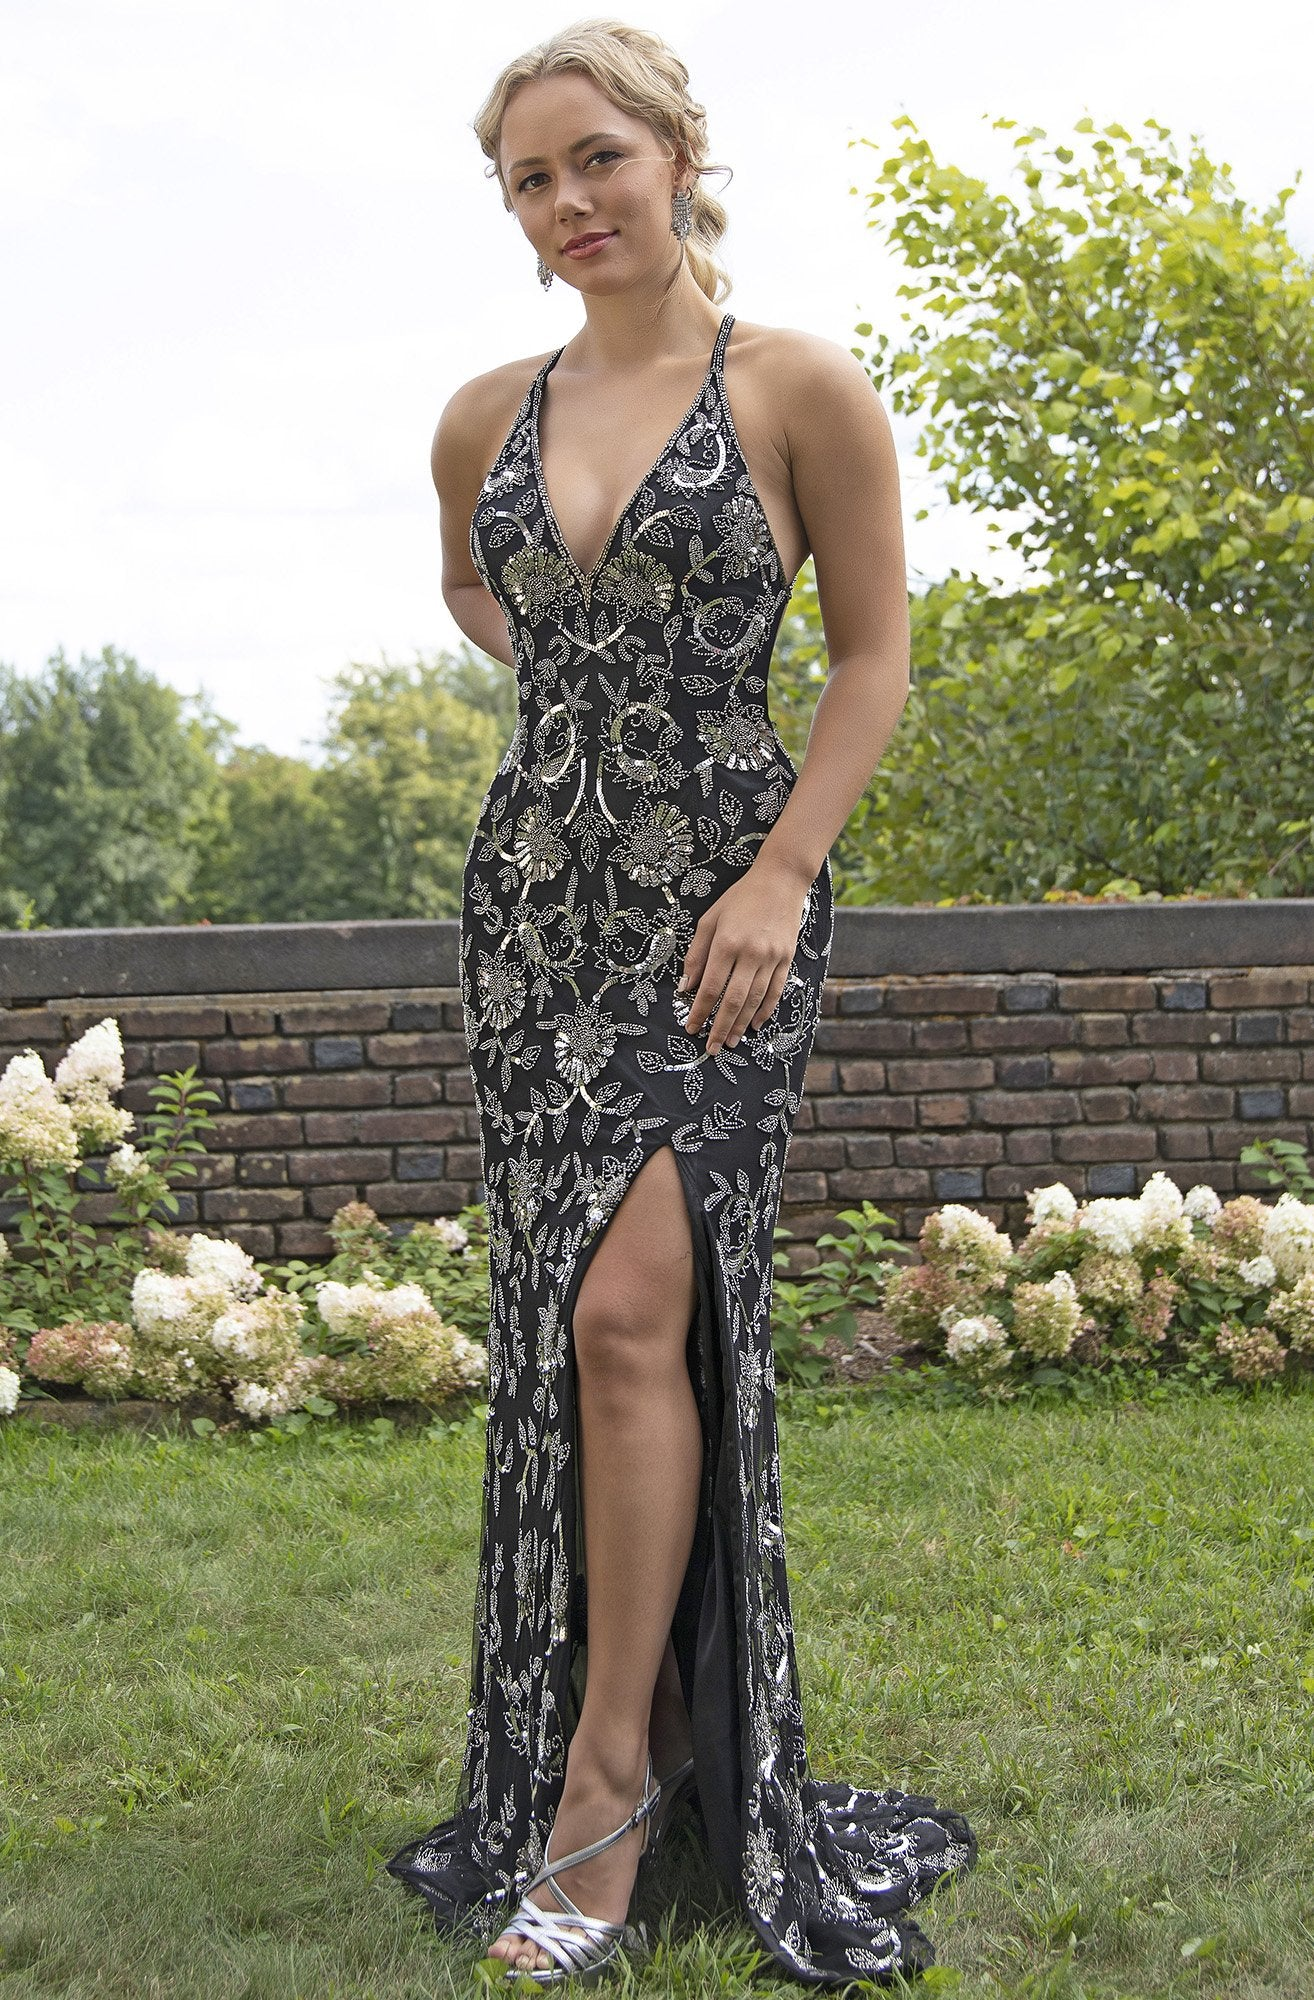 Primavera Couture - 3259 Stylistic Floral Beaded High Slit Gown In Black and Silver